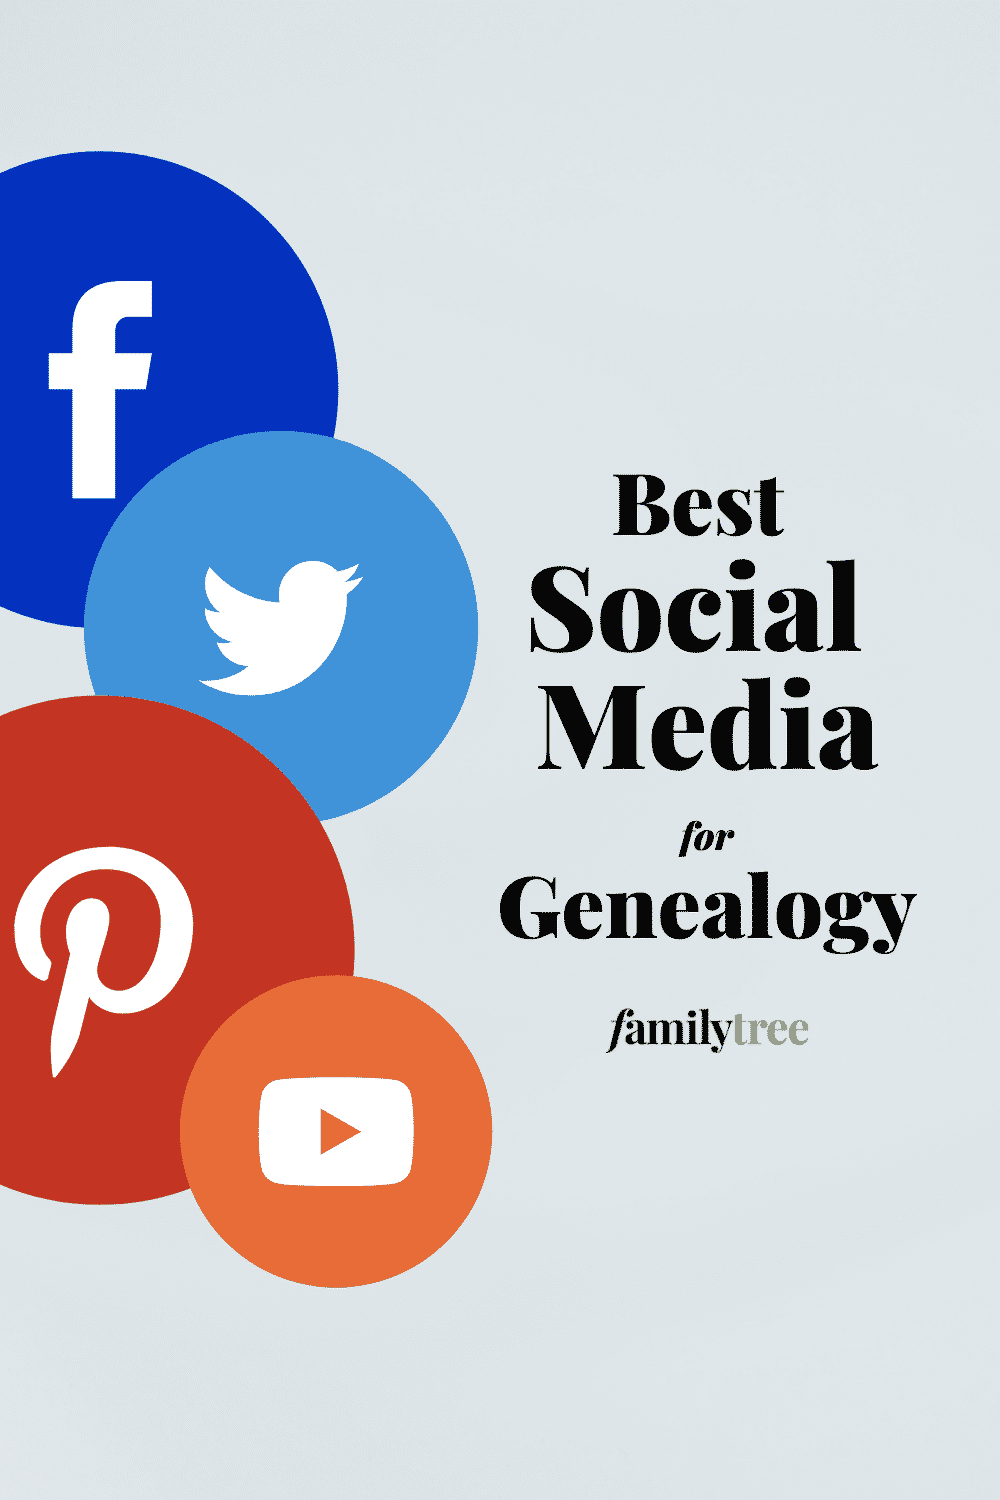 Best Social Media for Genealogy Pinterest pin.